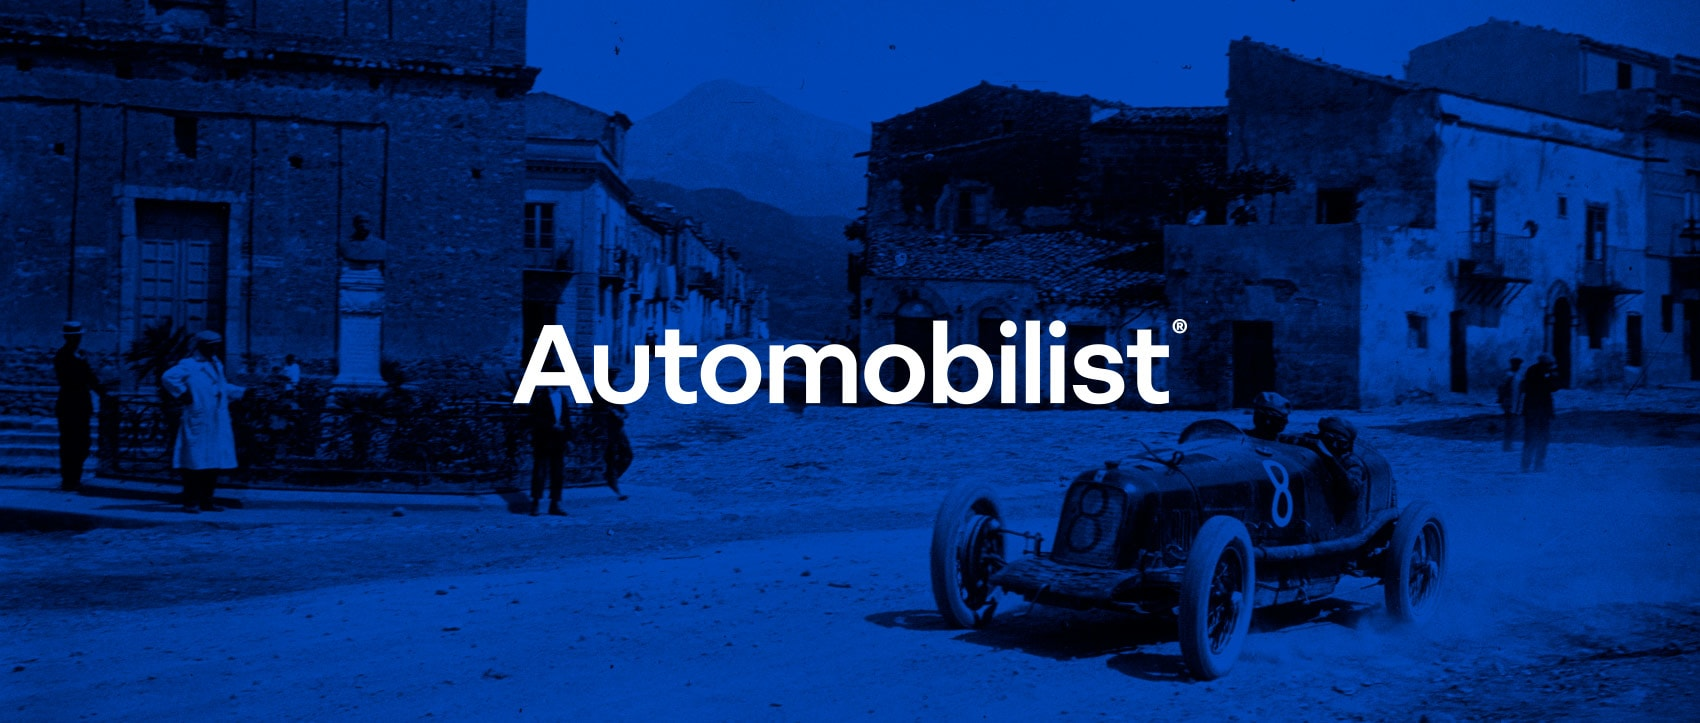 The new Automobilist website